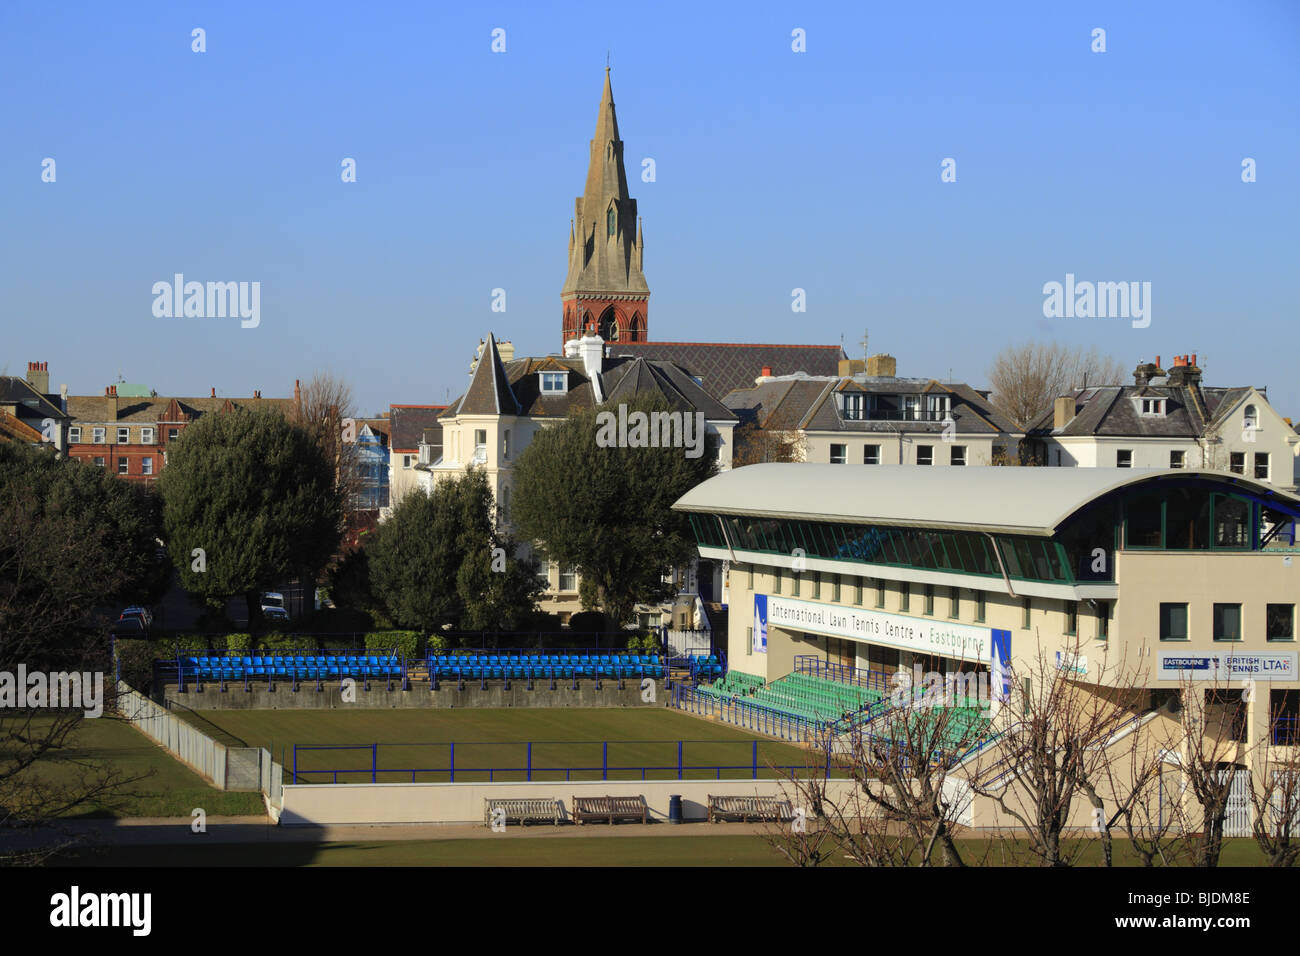 Eastbourne Lawn Tennis Center - venue for the annual AEGON International ladies and mens tennis competitions. - Stock Image